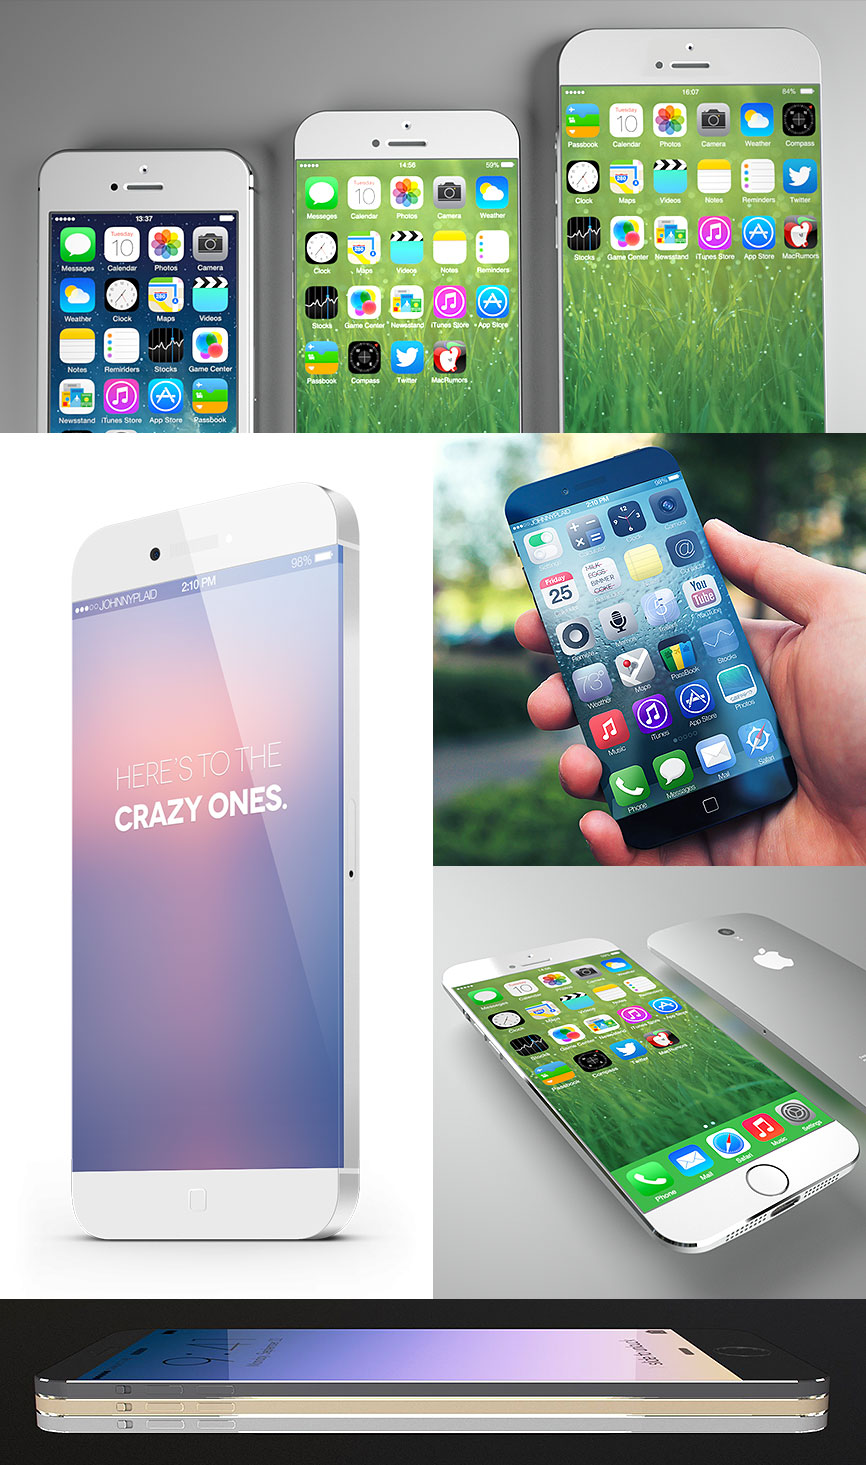 iPhone 6 concepts